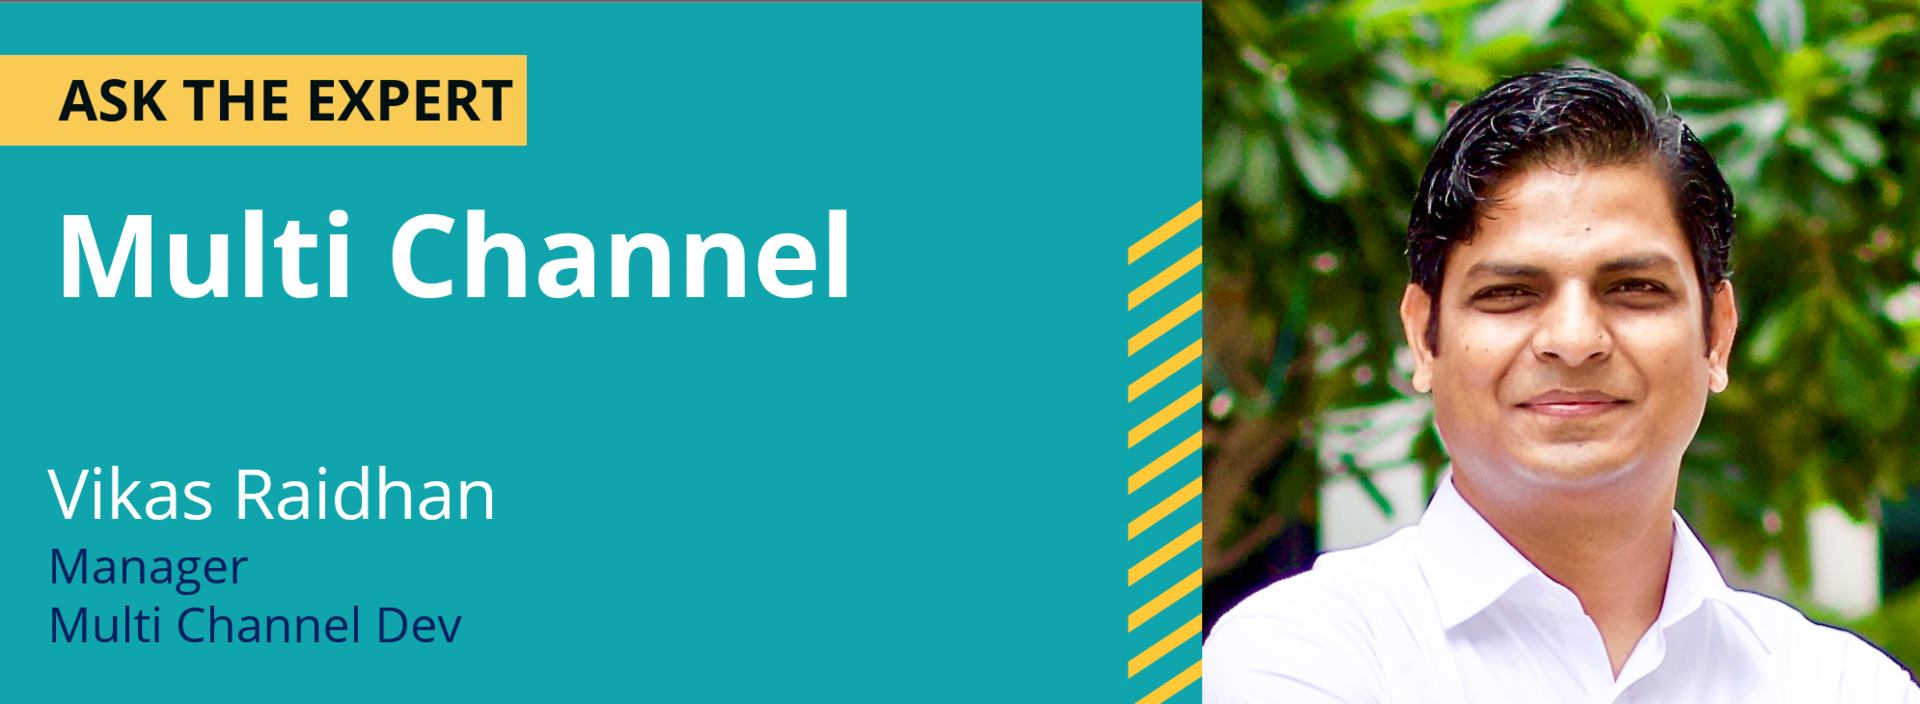 Ask the Expert - Multi Channel with Vikas Raidhan